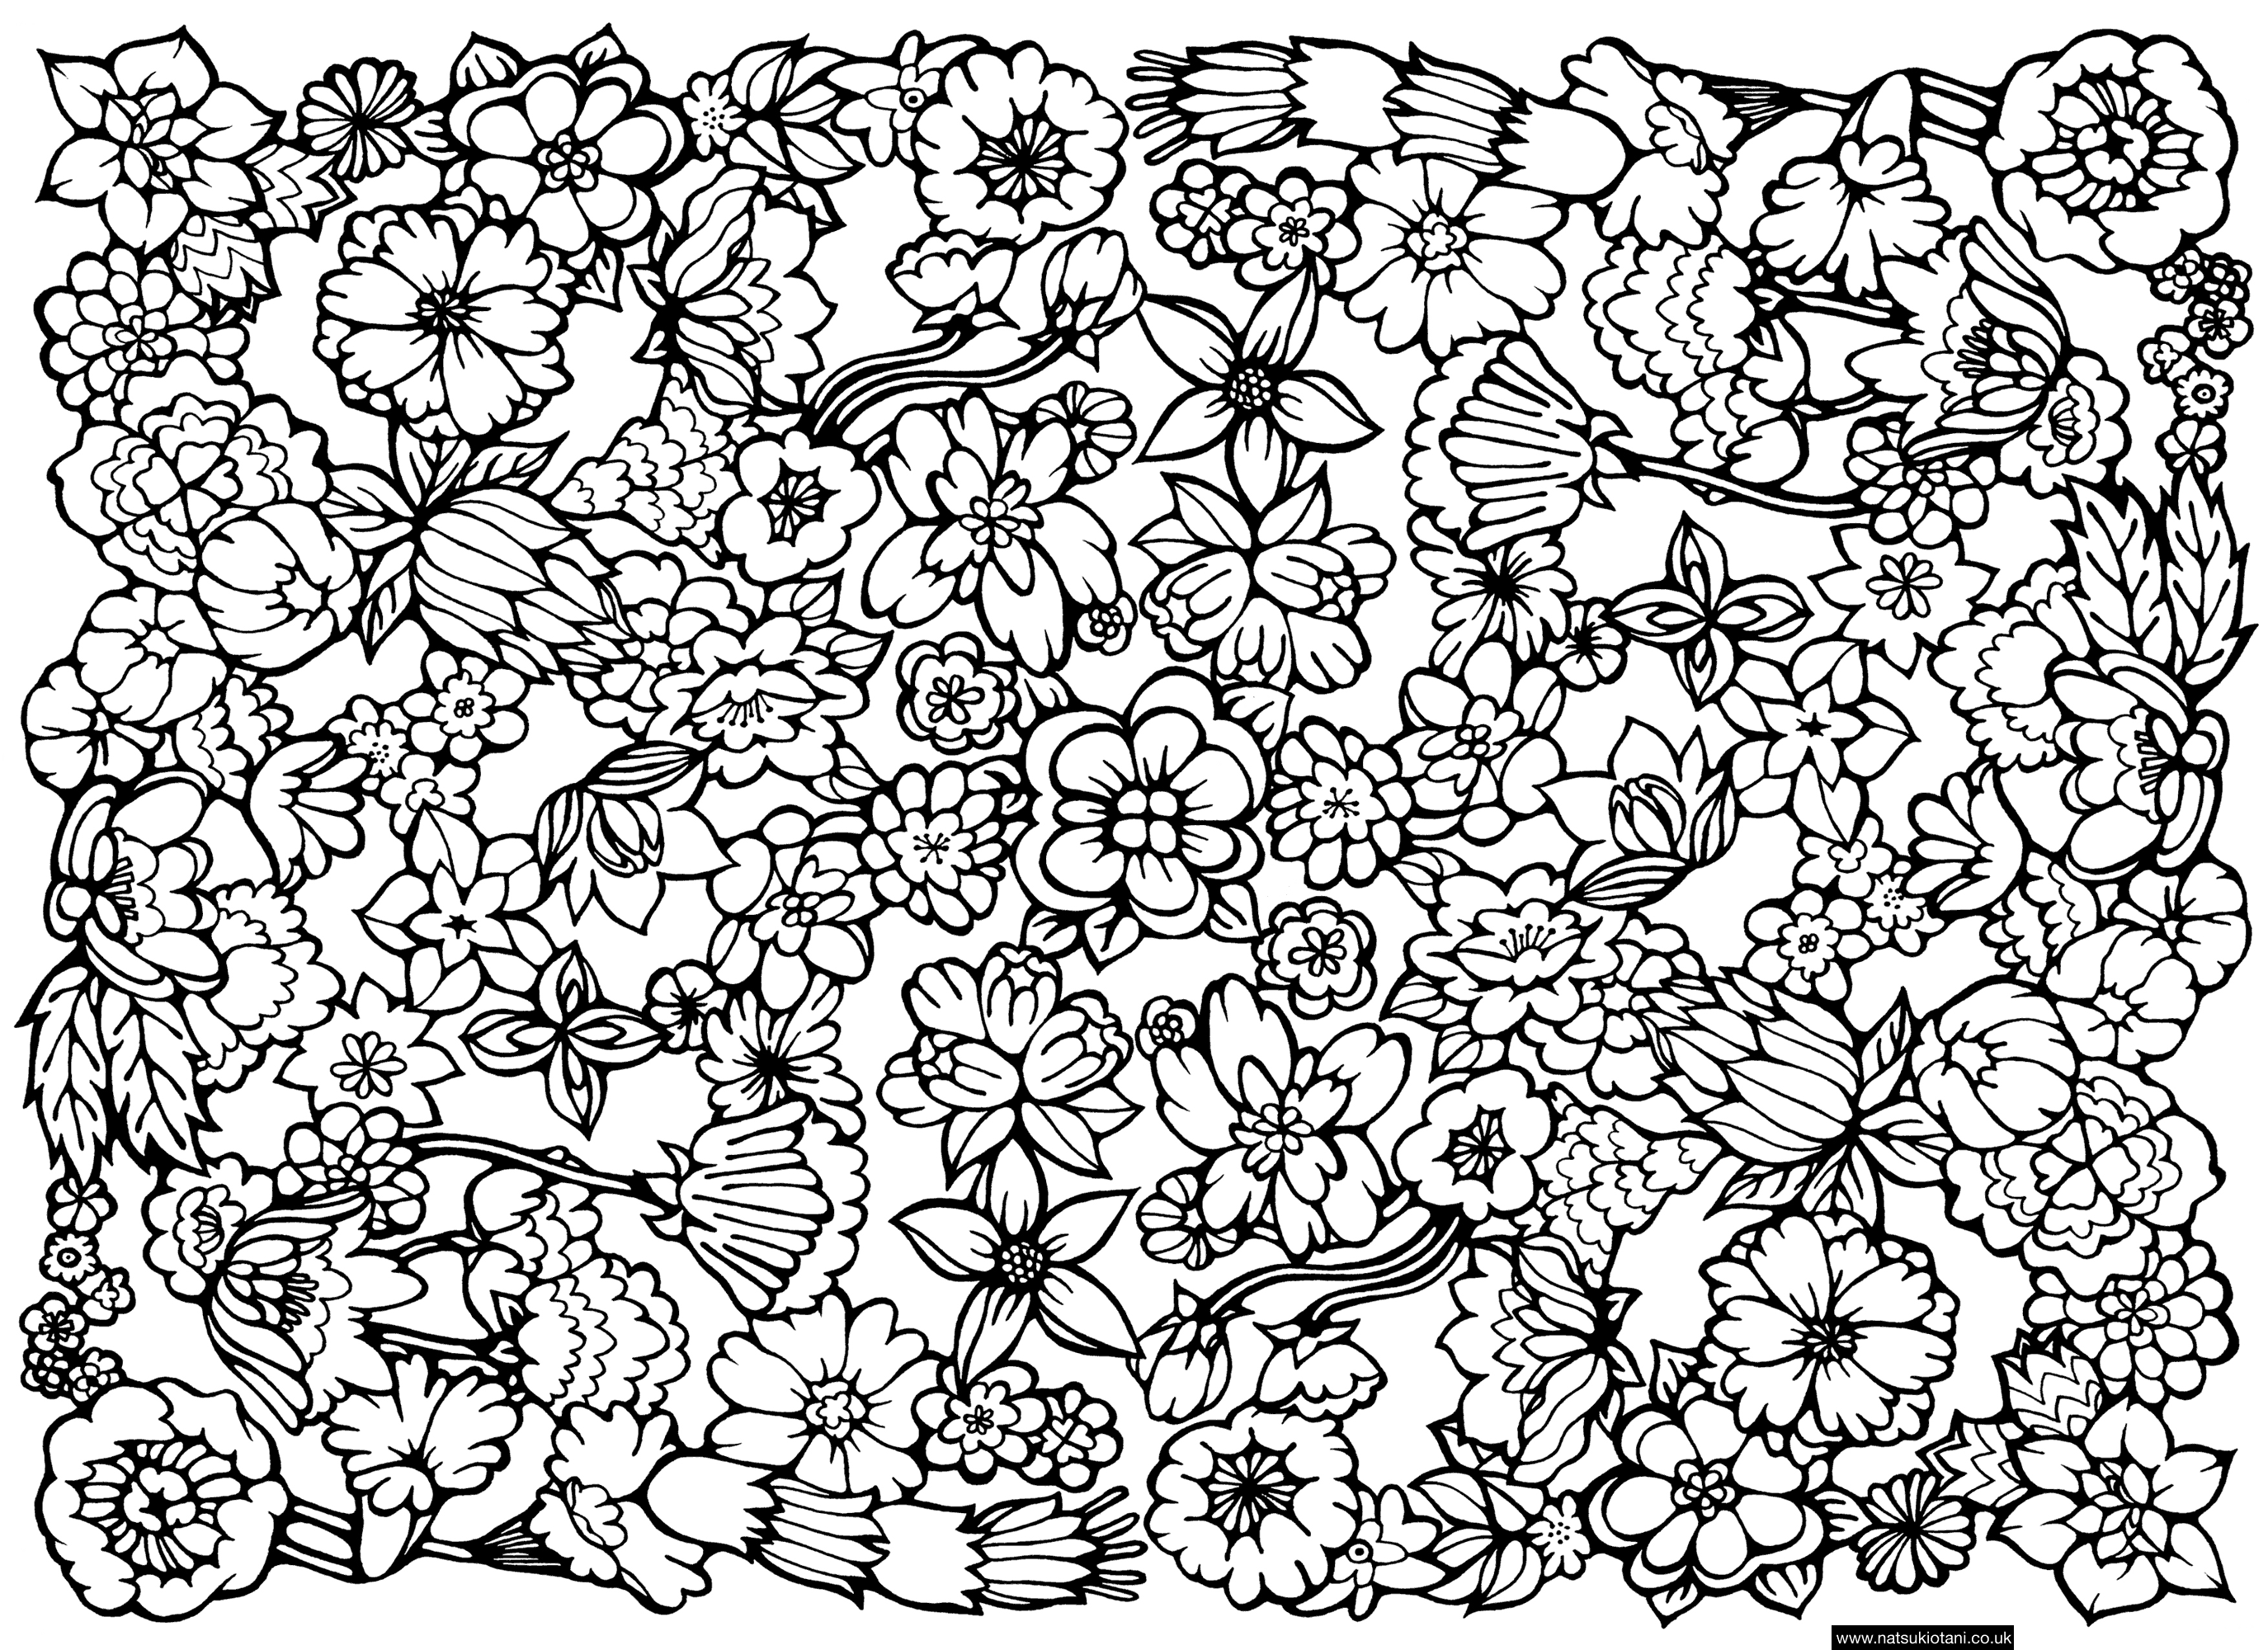 hard coloring pages for adults flower difficult flowers adult coloring pages coloring hard adults for pages